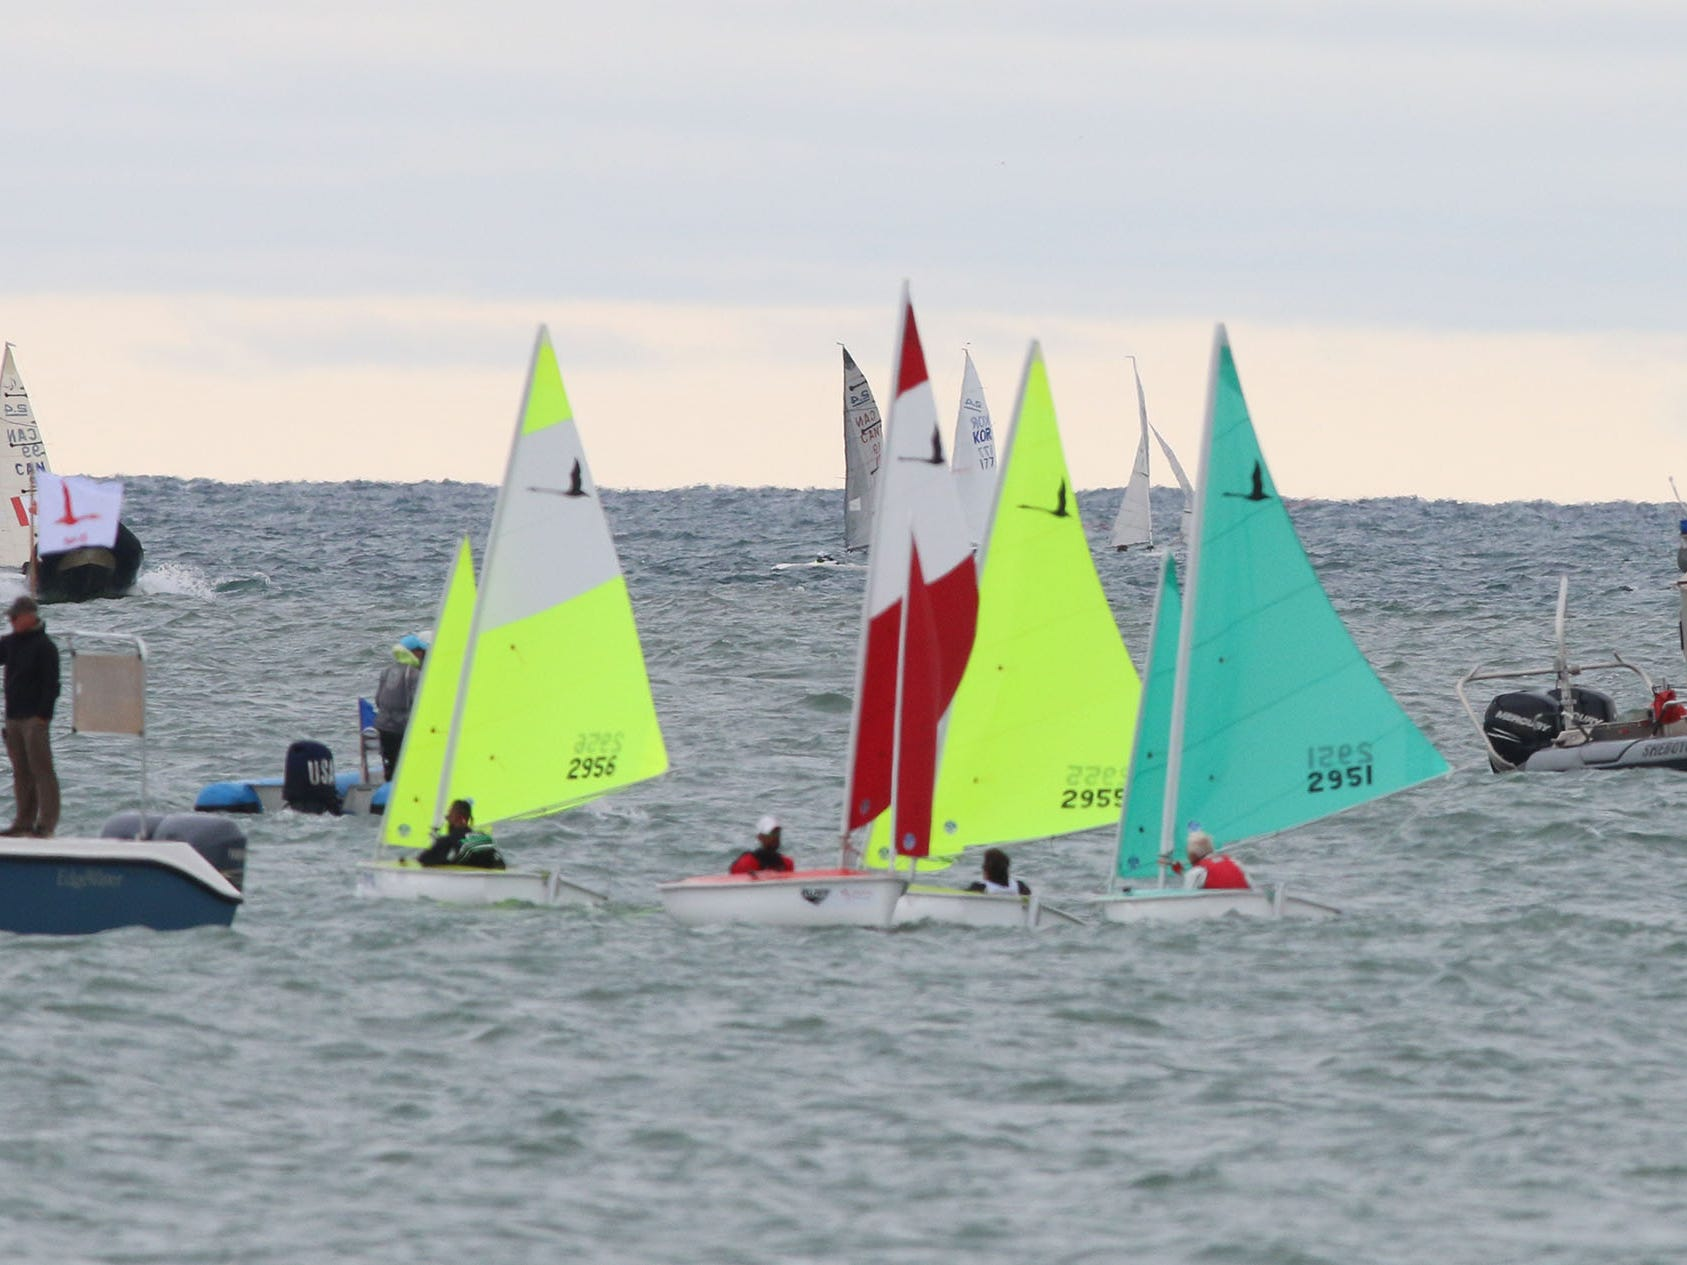 Hansa 303 sailboats provide plenty of color out on the lakefront at the Para World Sailing Championships, Tuesday, September 18, 2018, in Sheboygan, Wis.